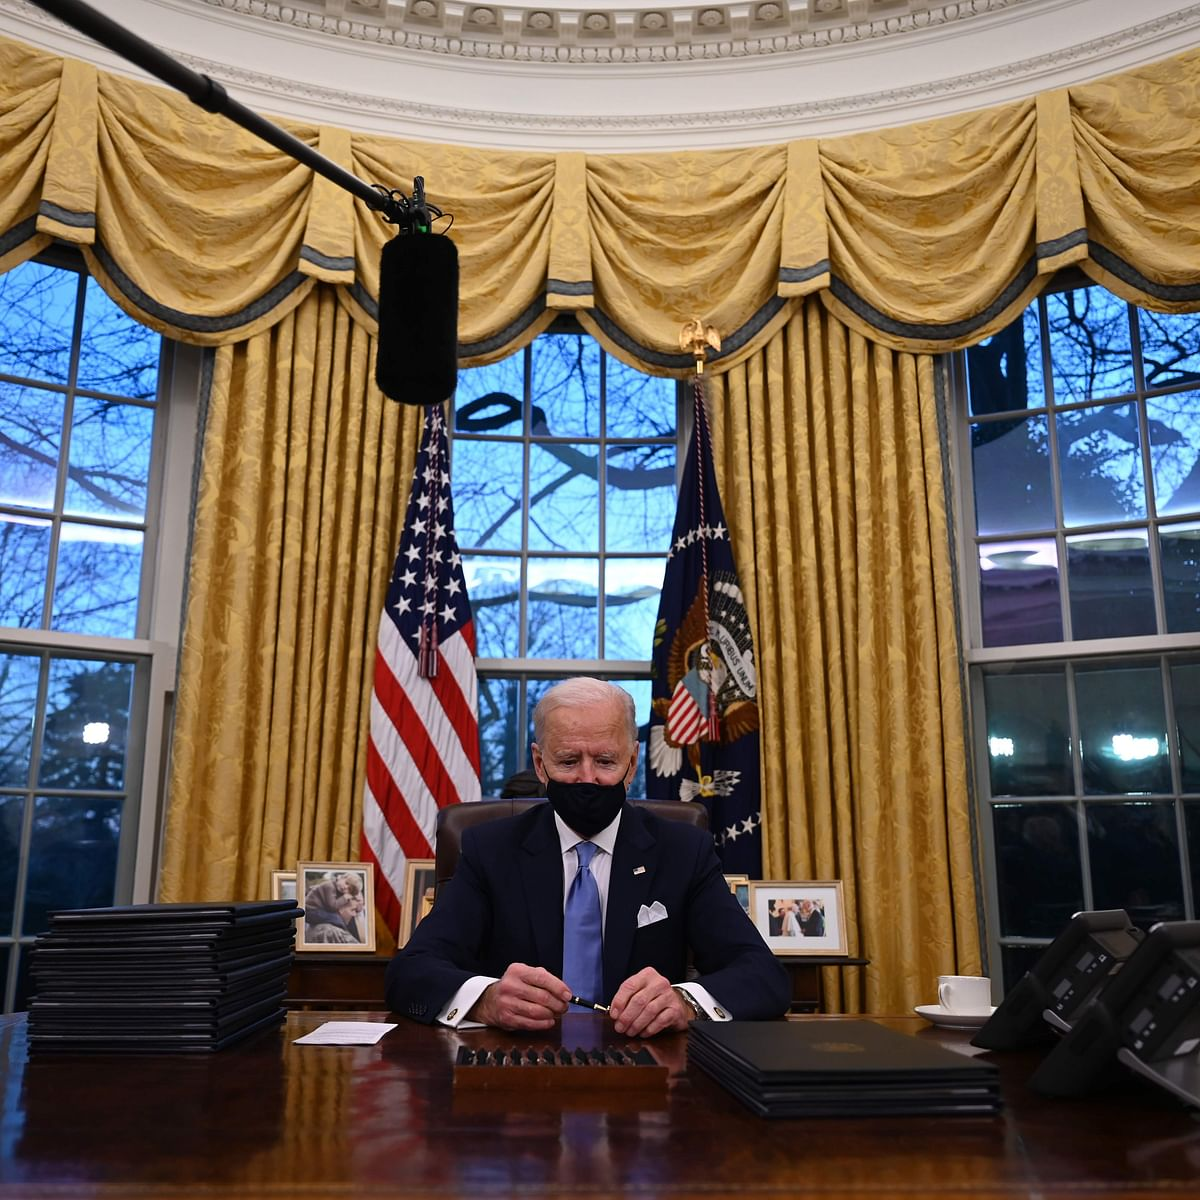 Hours after taking office, President Biden ends Trump's 'Muslim travel ban'